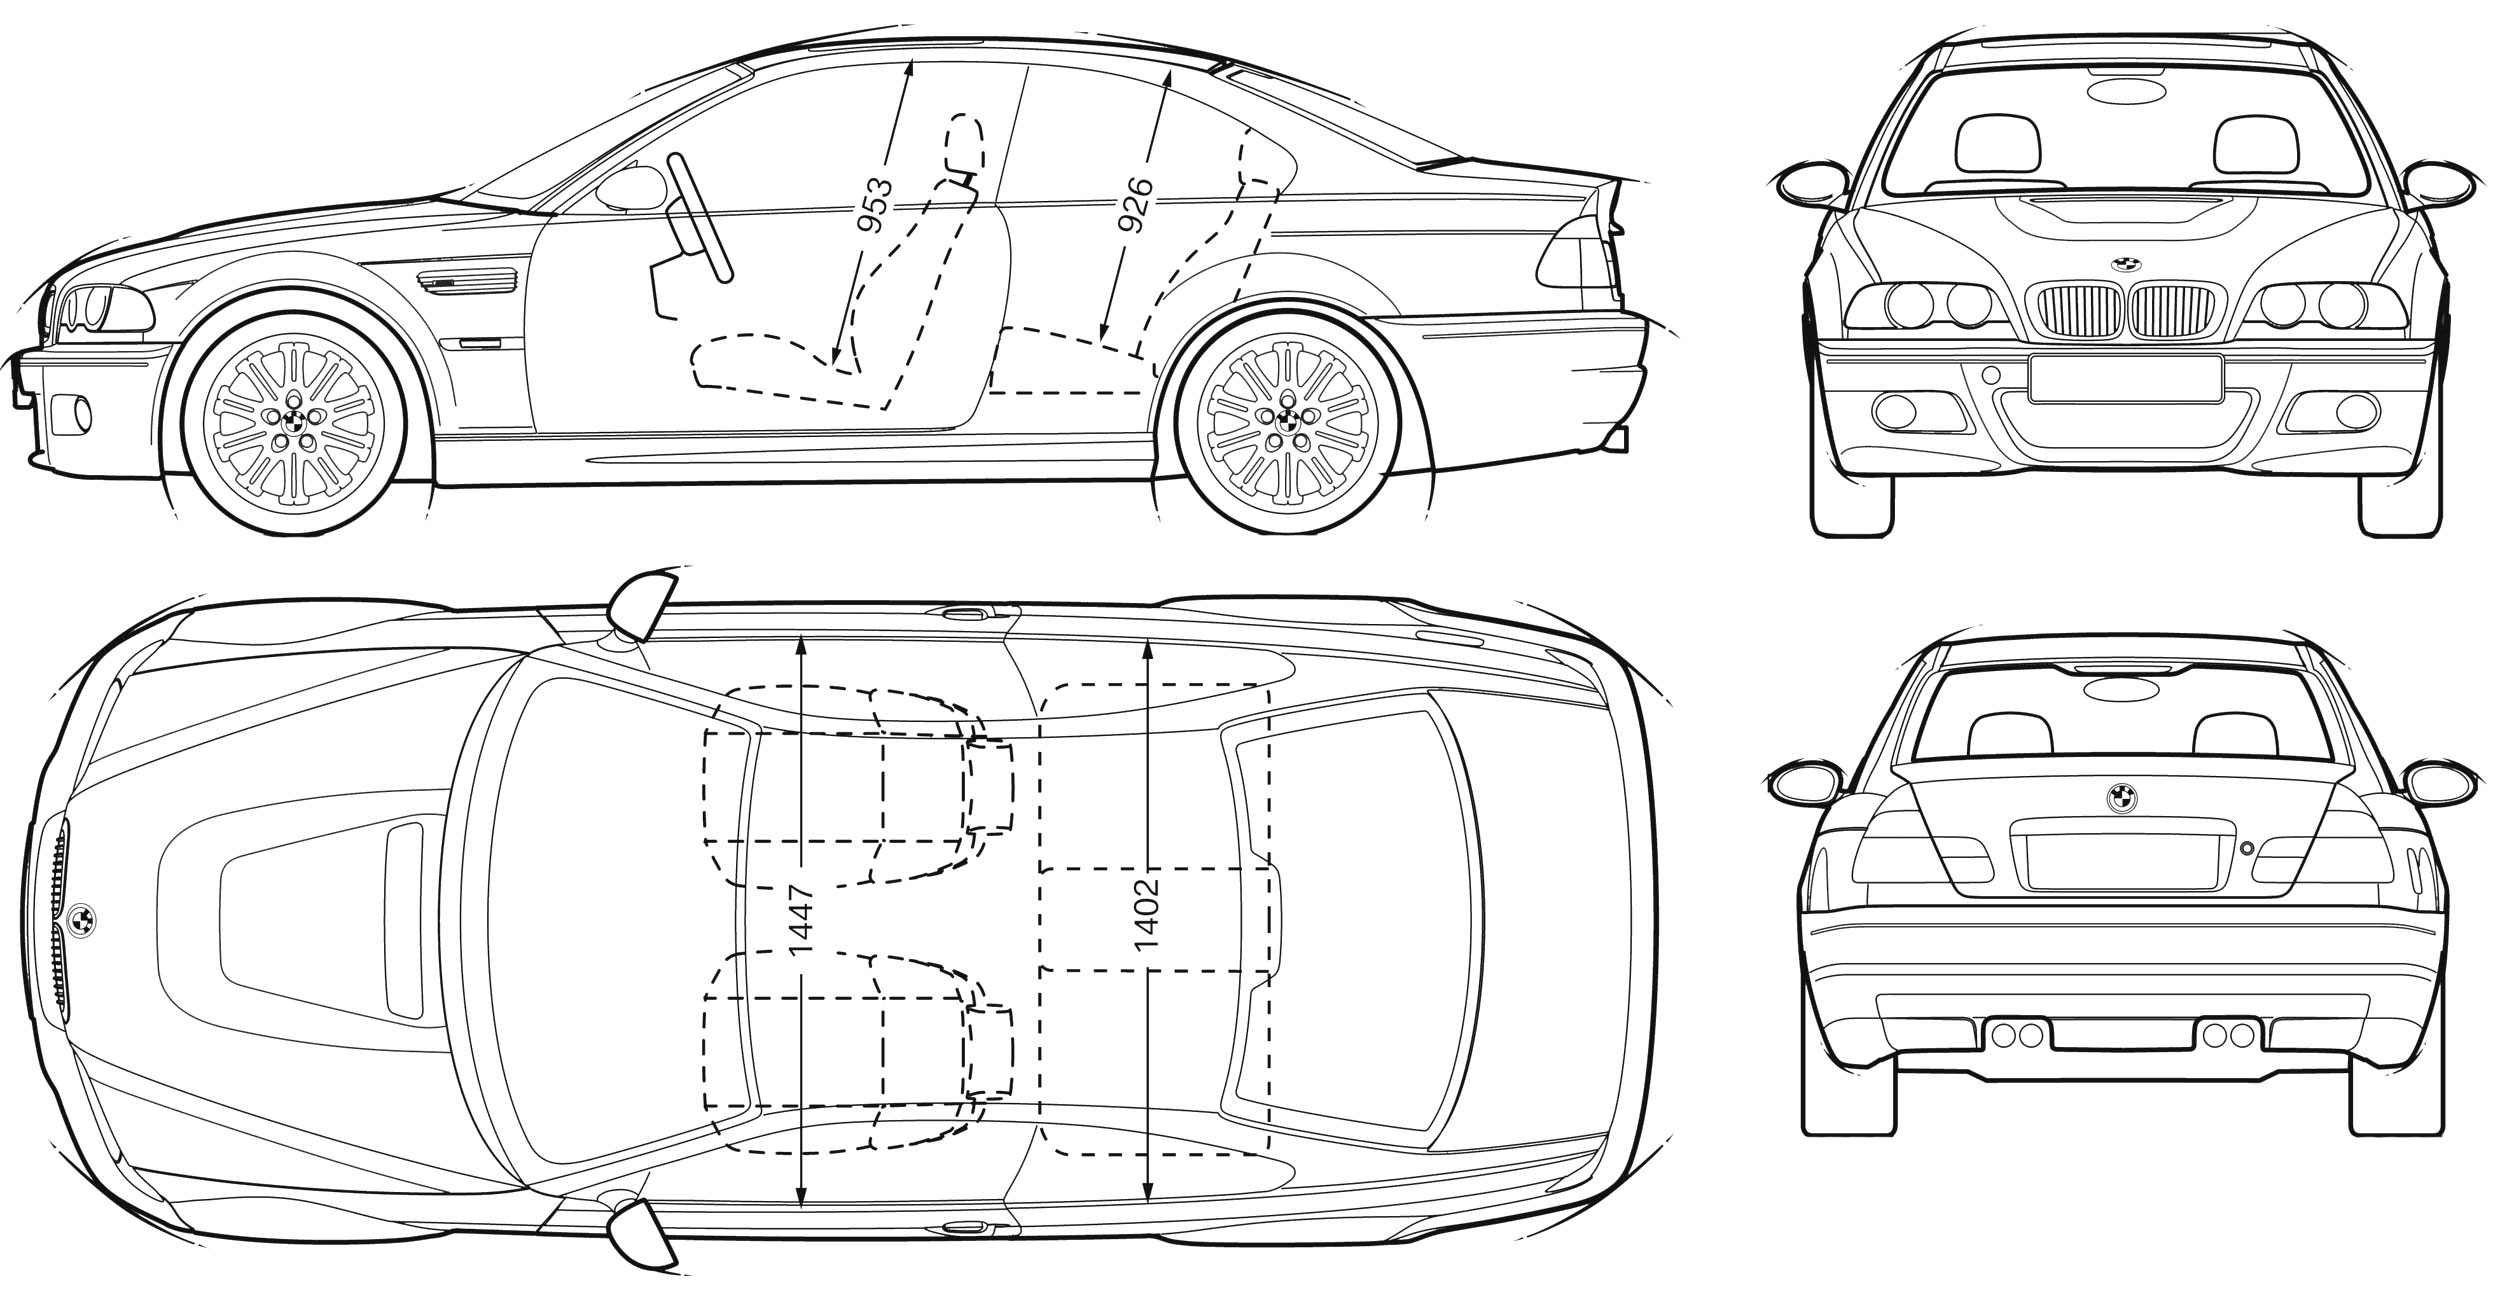 Does Anyone Have That Picture Of An E46 Drawing